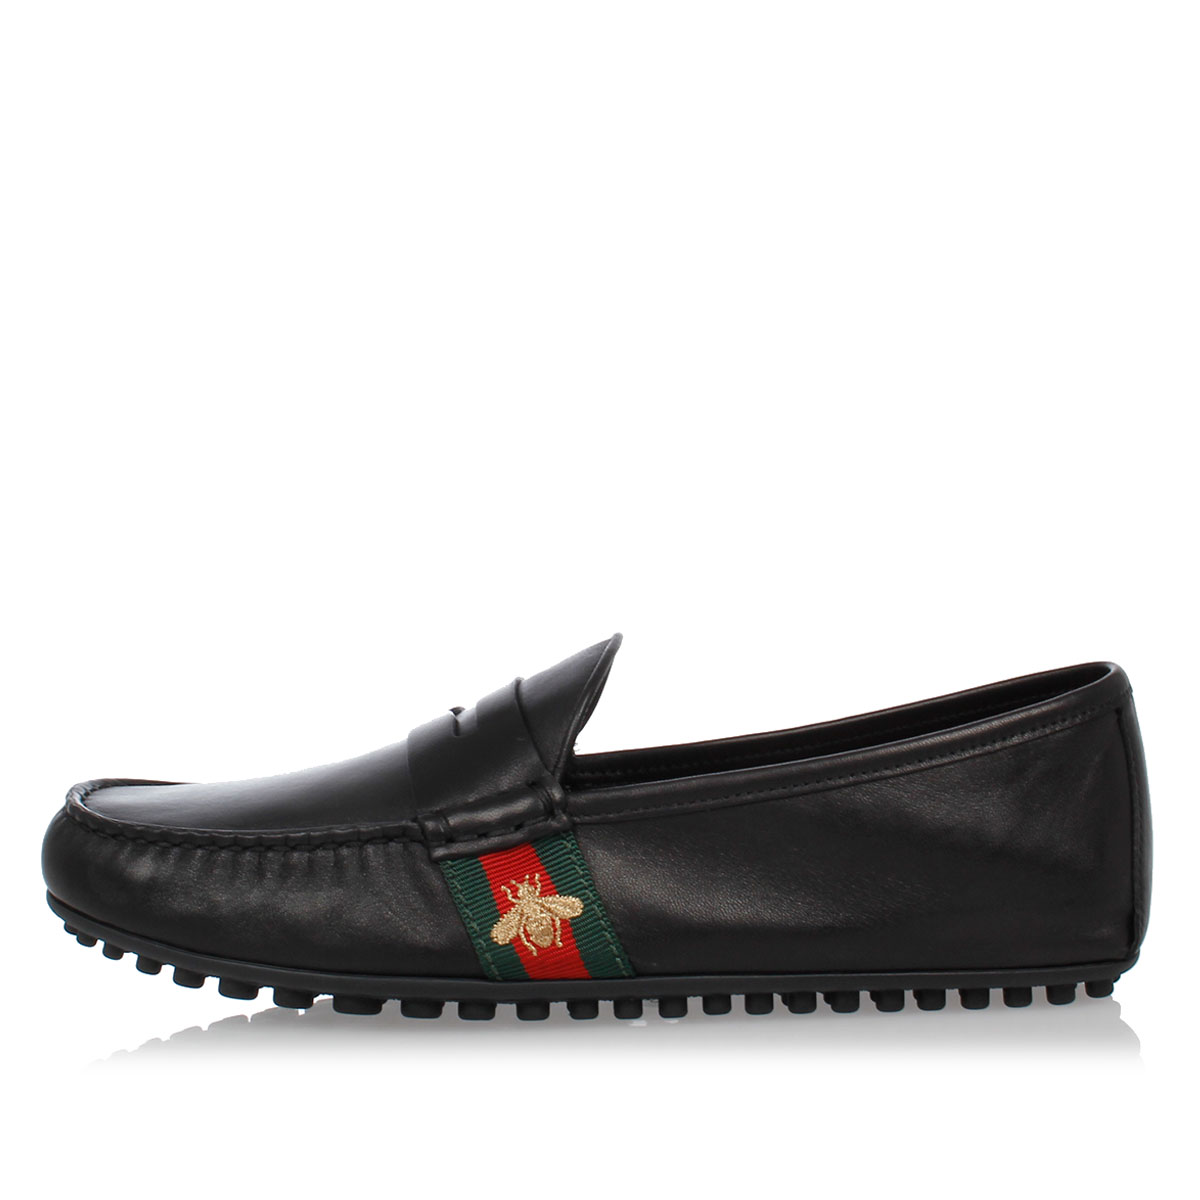 f74552da634 Gucci Men Loafer in Leather - Glamood Outlet